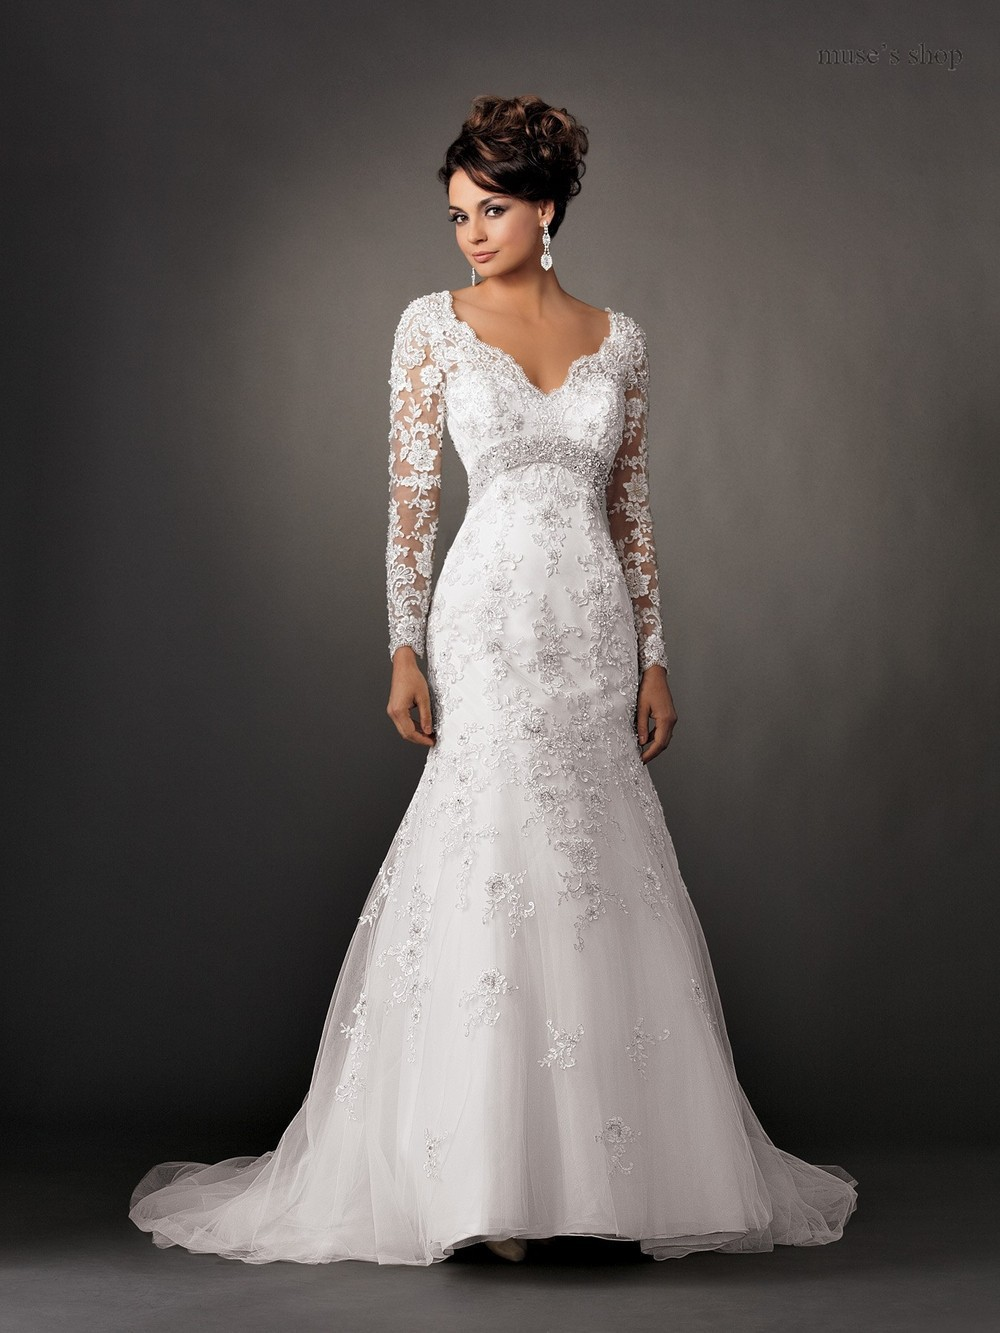 v neck vintage long sleeve lace wedding dresses backless